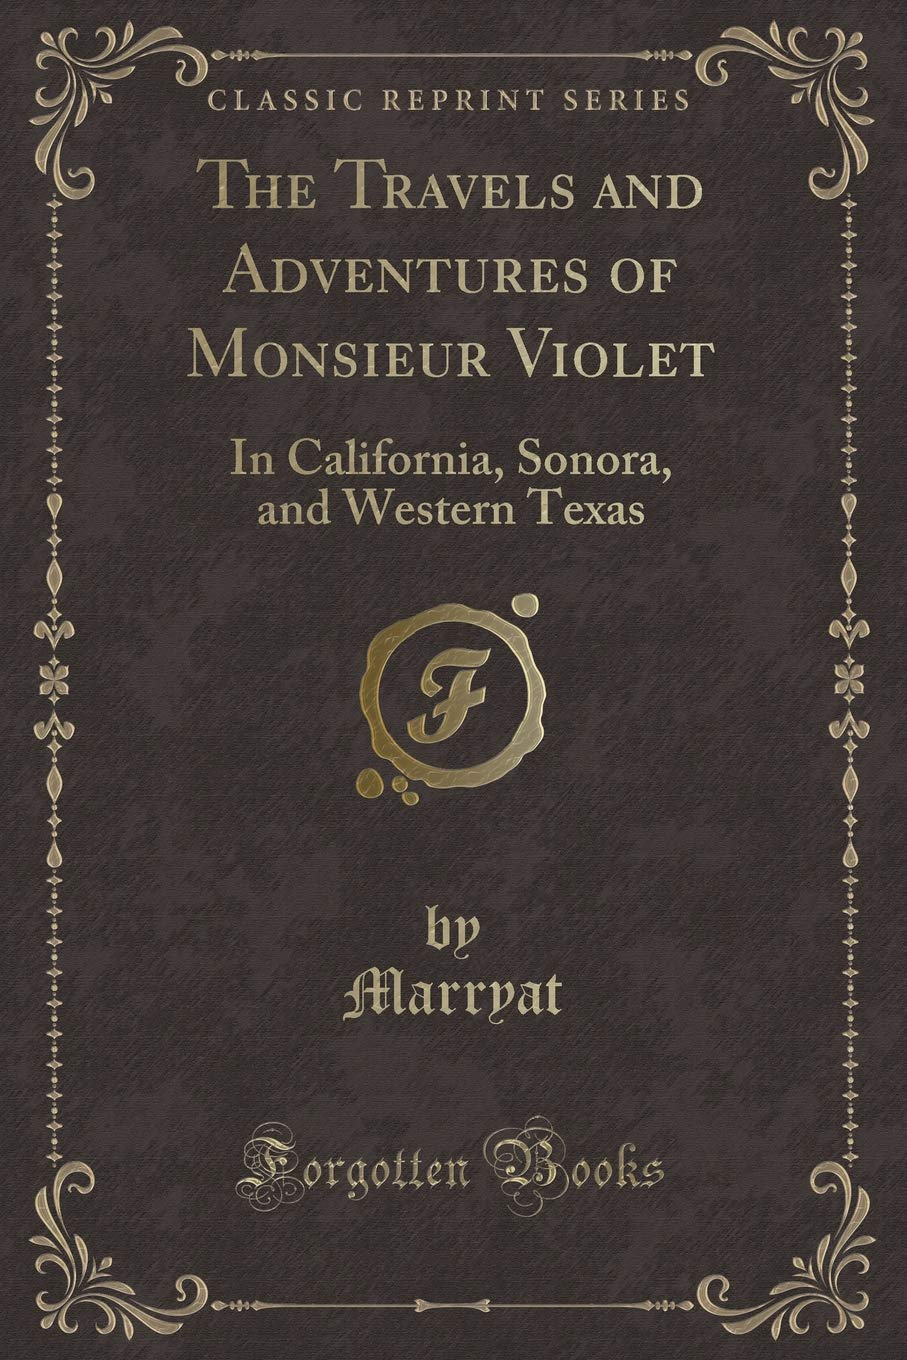 The Travels and Adventures of Monsieur Violet in California, Sonora, and Western Texas